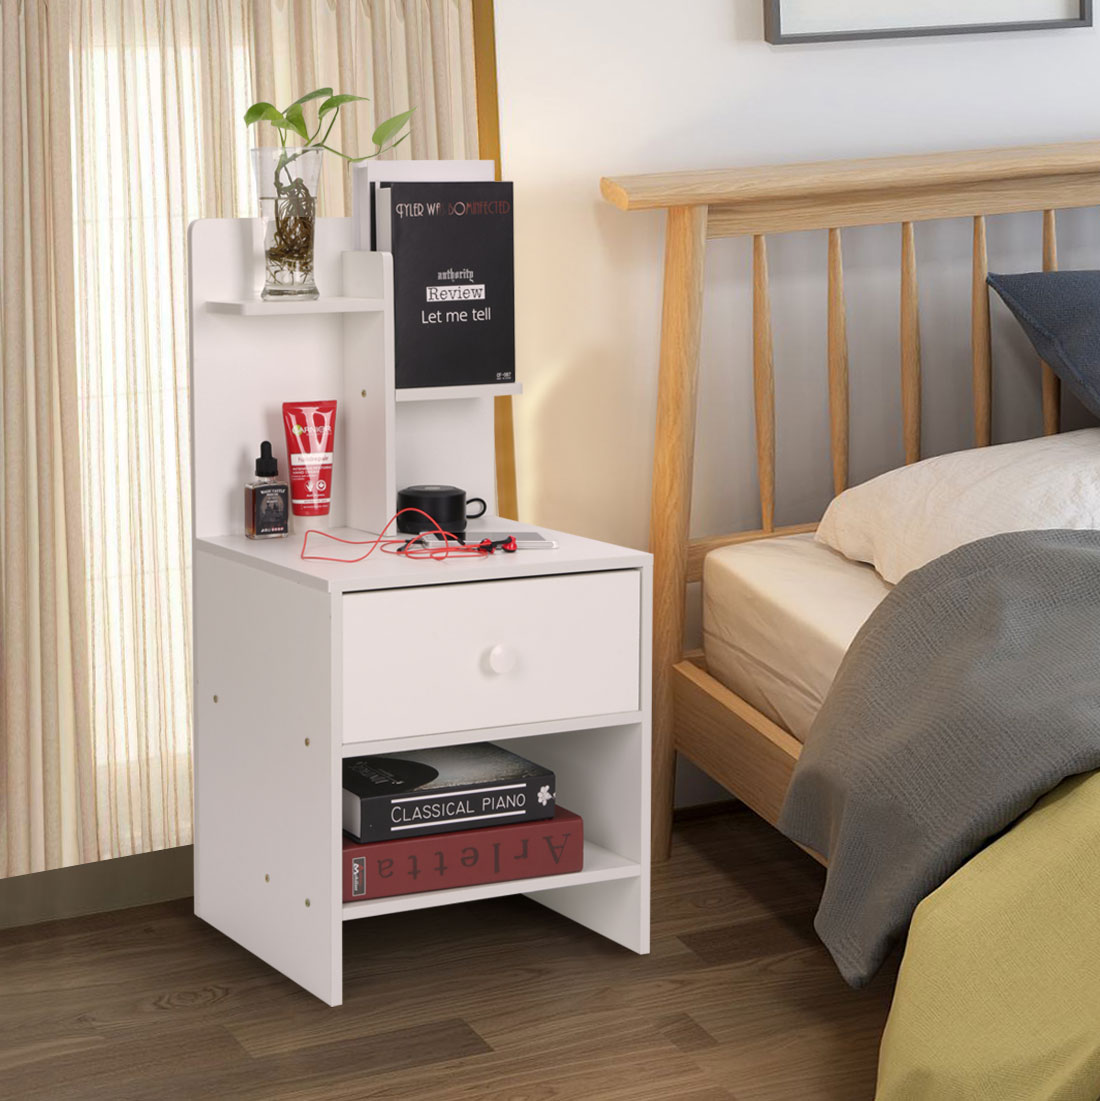 Hlc Wood Bedroom Side Table Modern Nightstand With One Drawer And Storage Shelf White Walmart Com